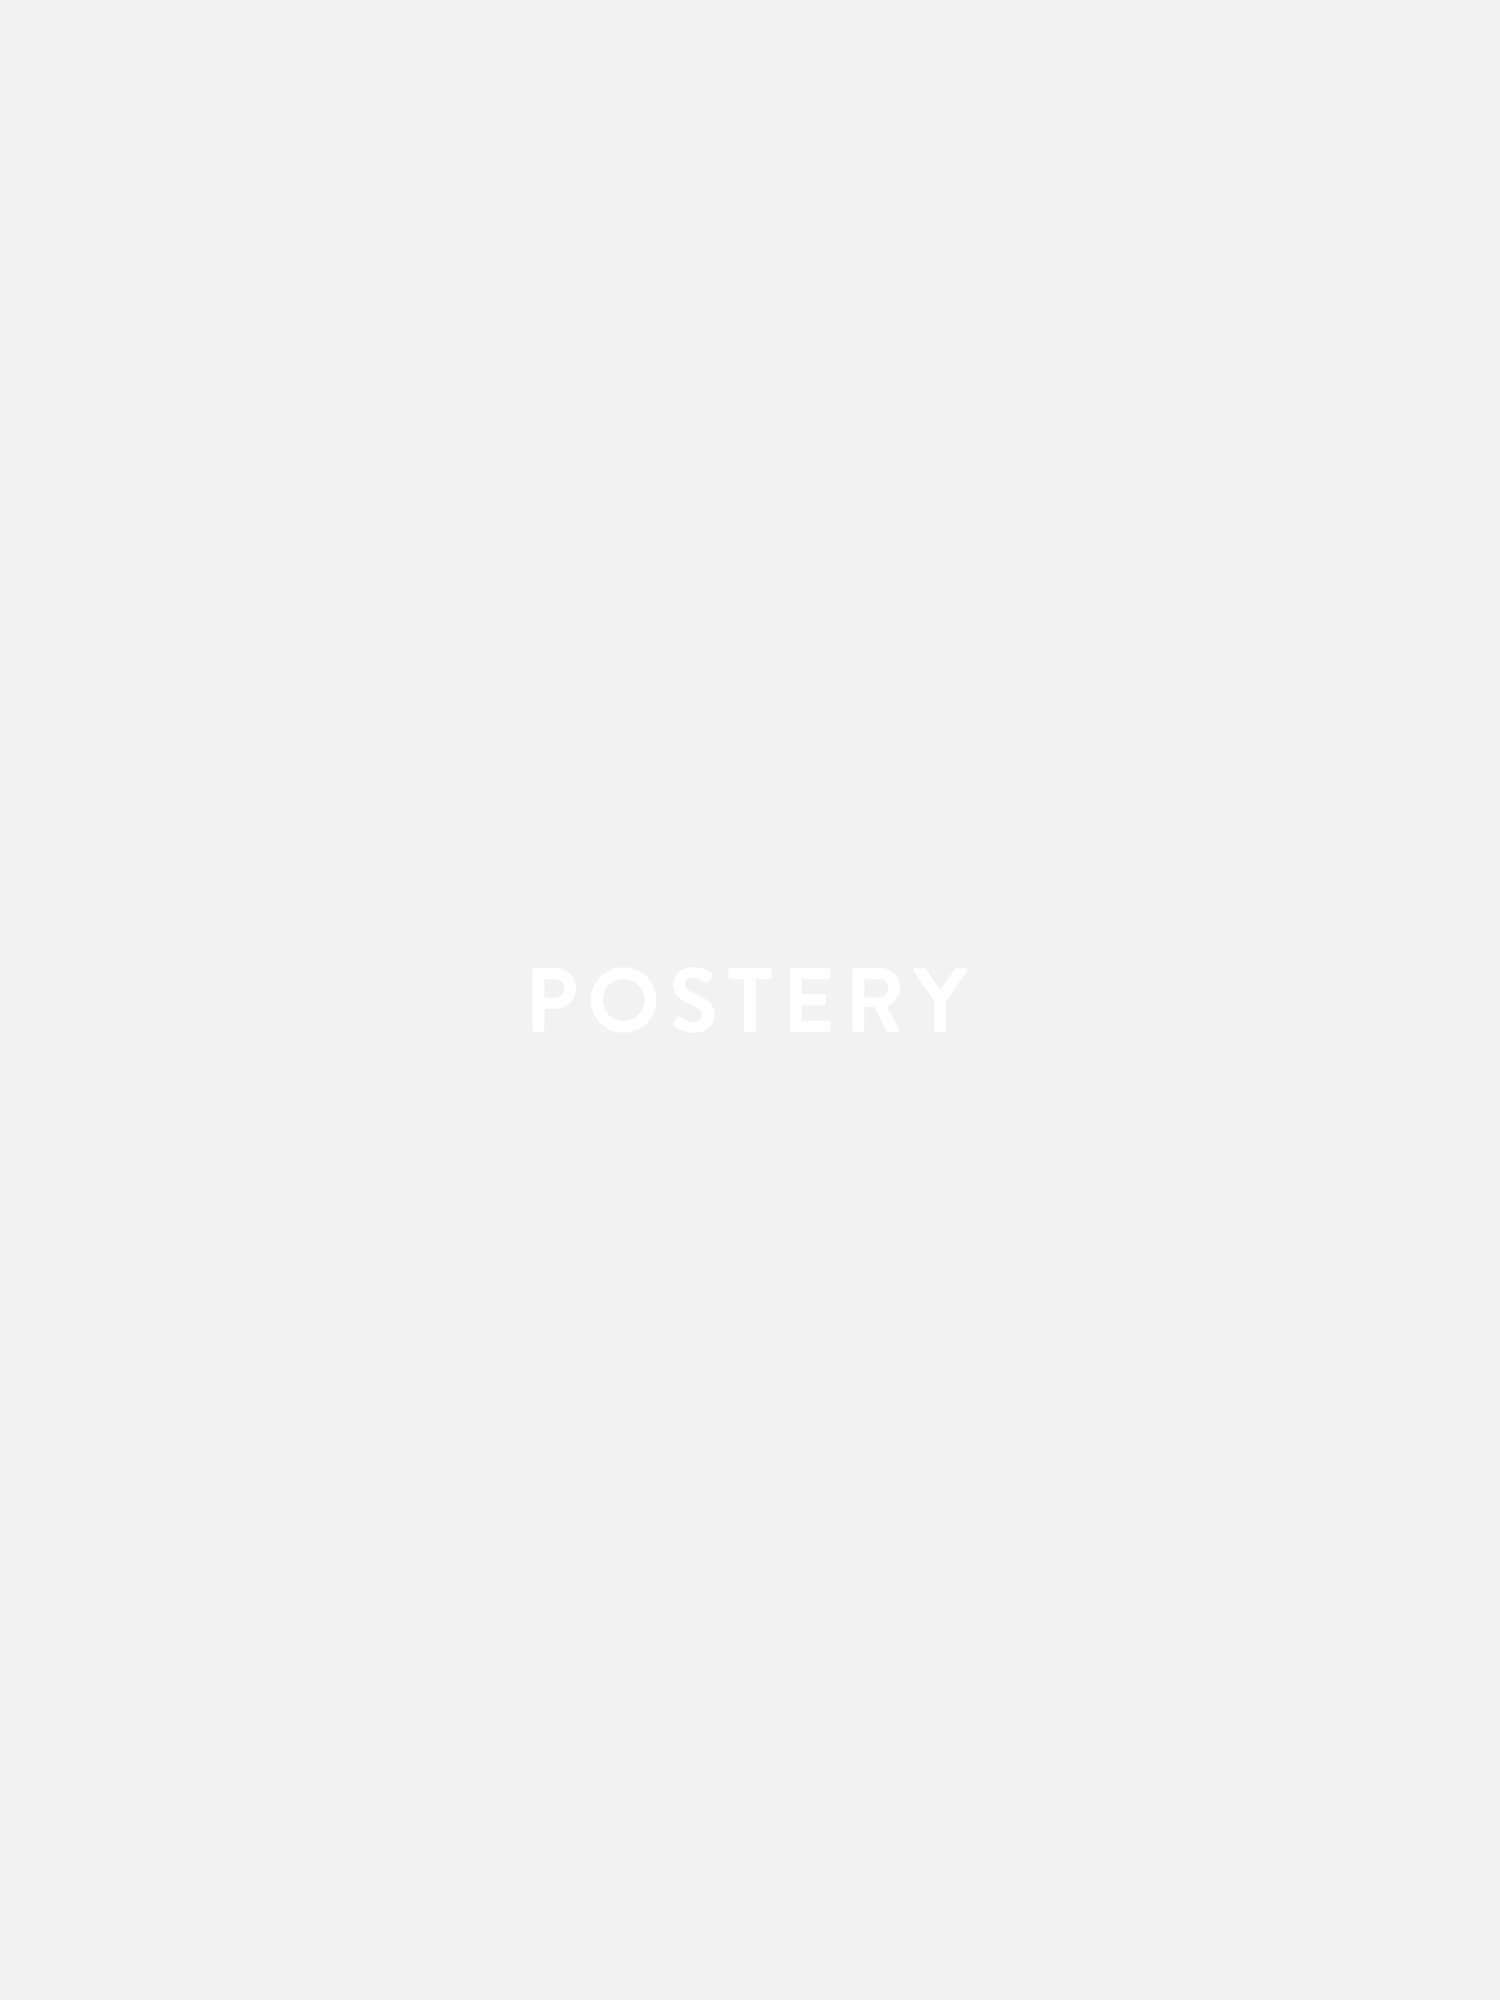 Be a Poem Poster